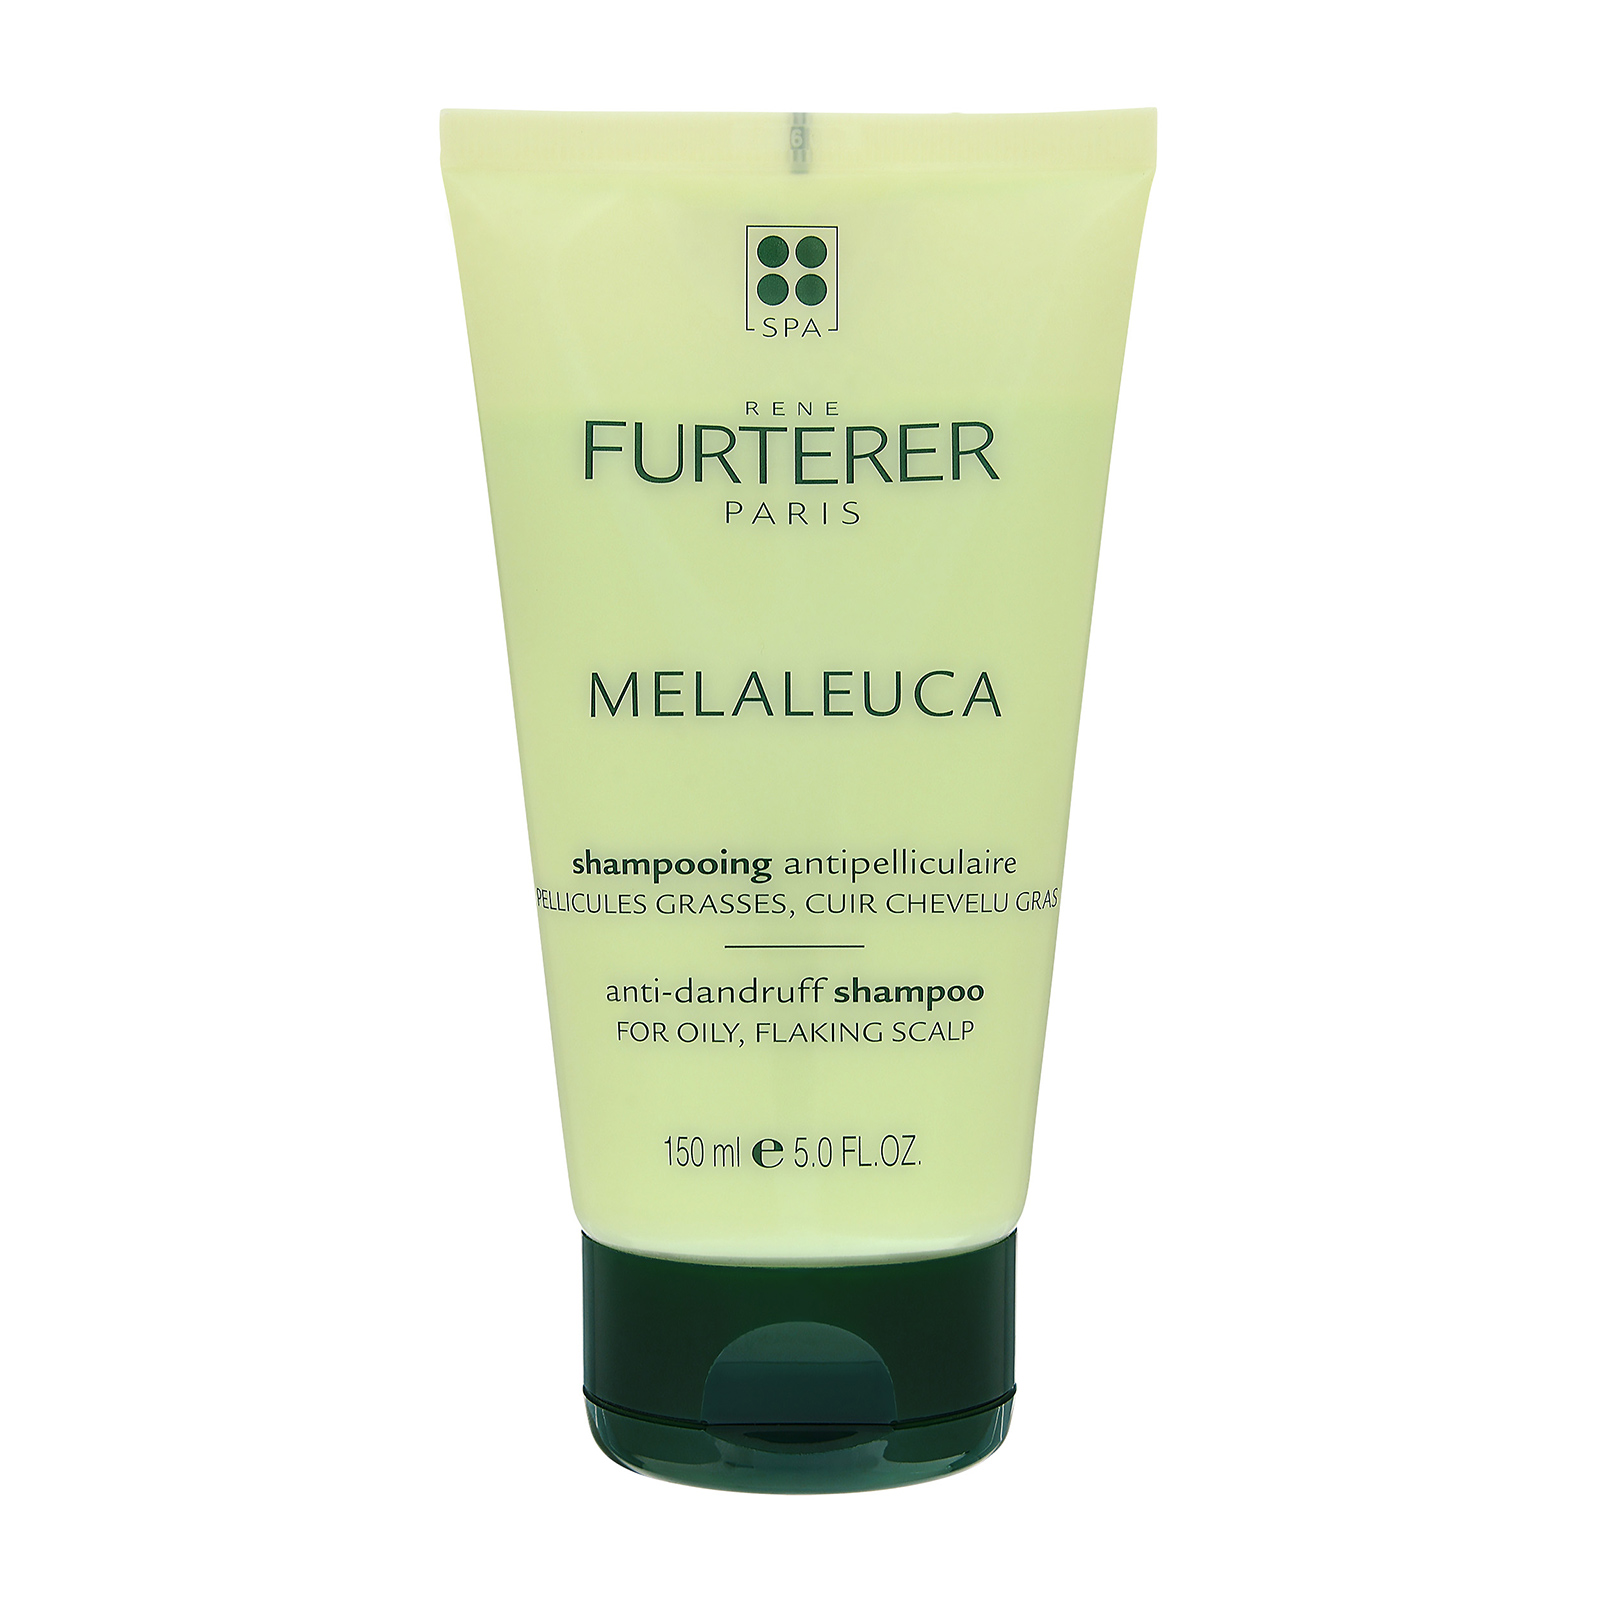 RENE FURTERER Melaleuca Anti-Dandruff Shampoo for Oily Scalp 5.07oz, 150ml